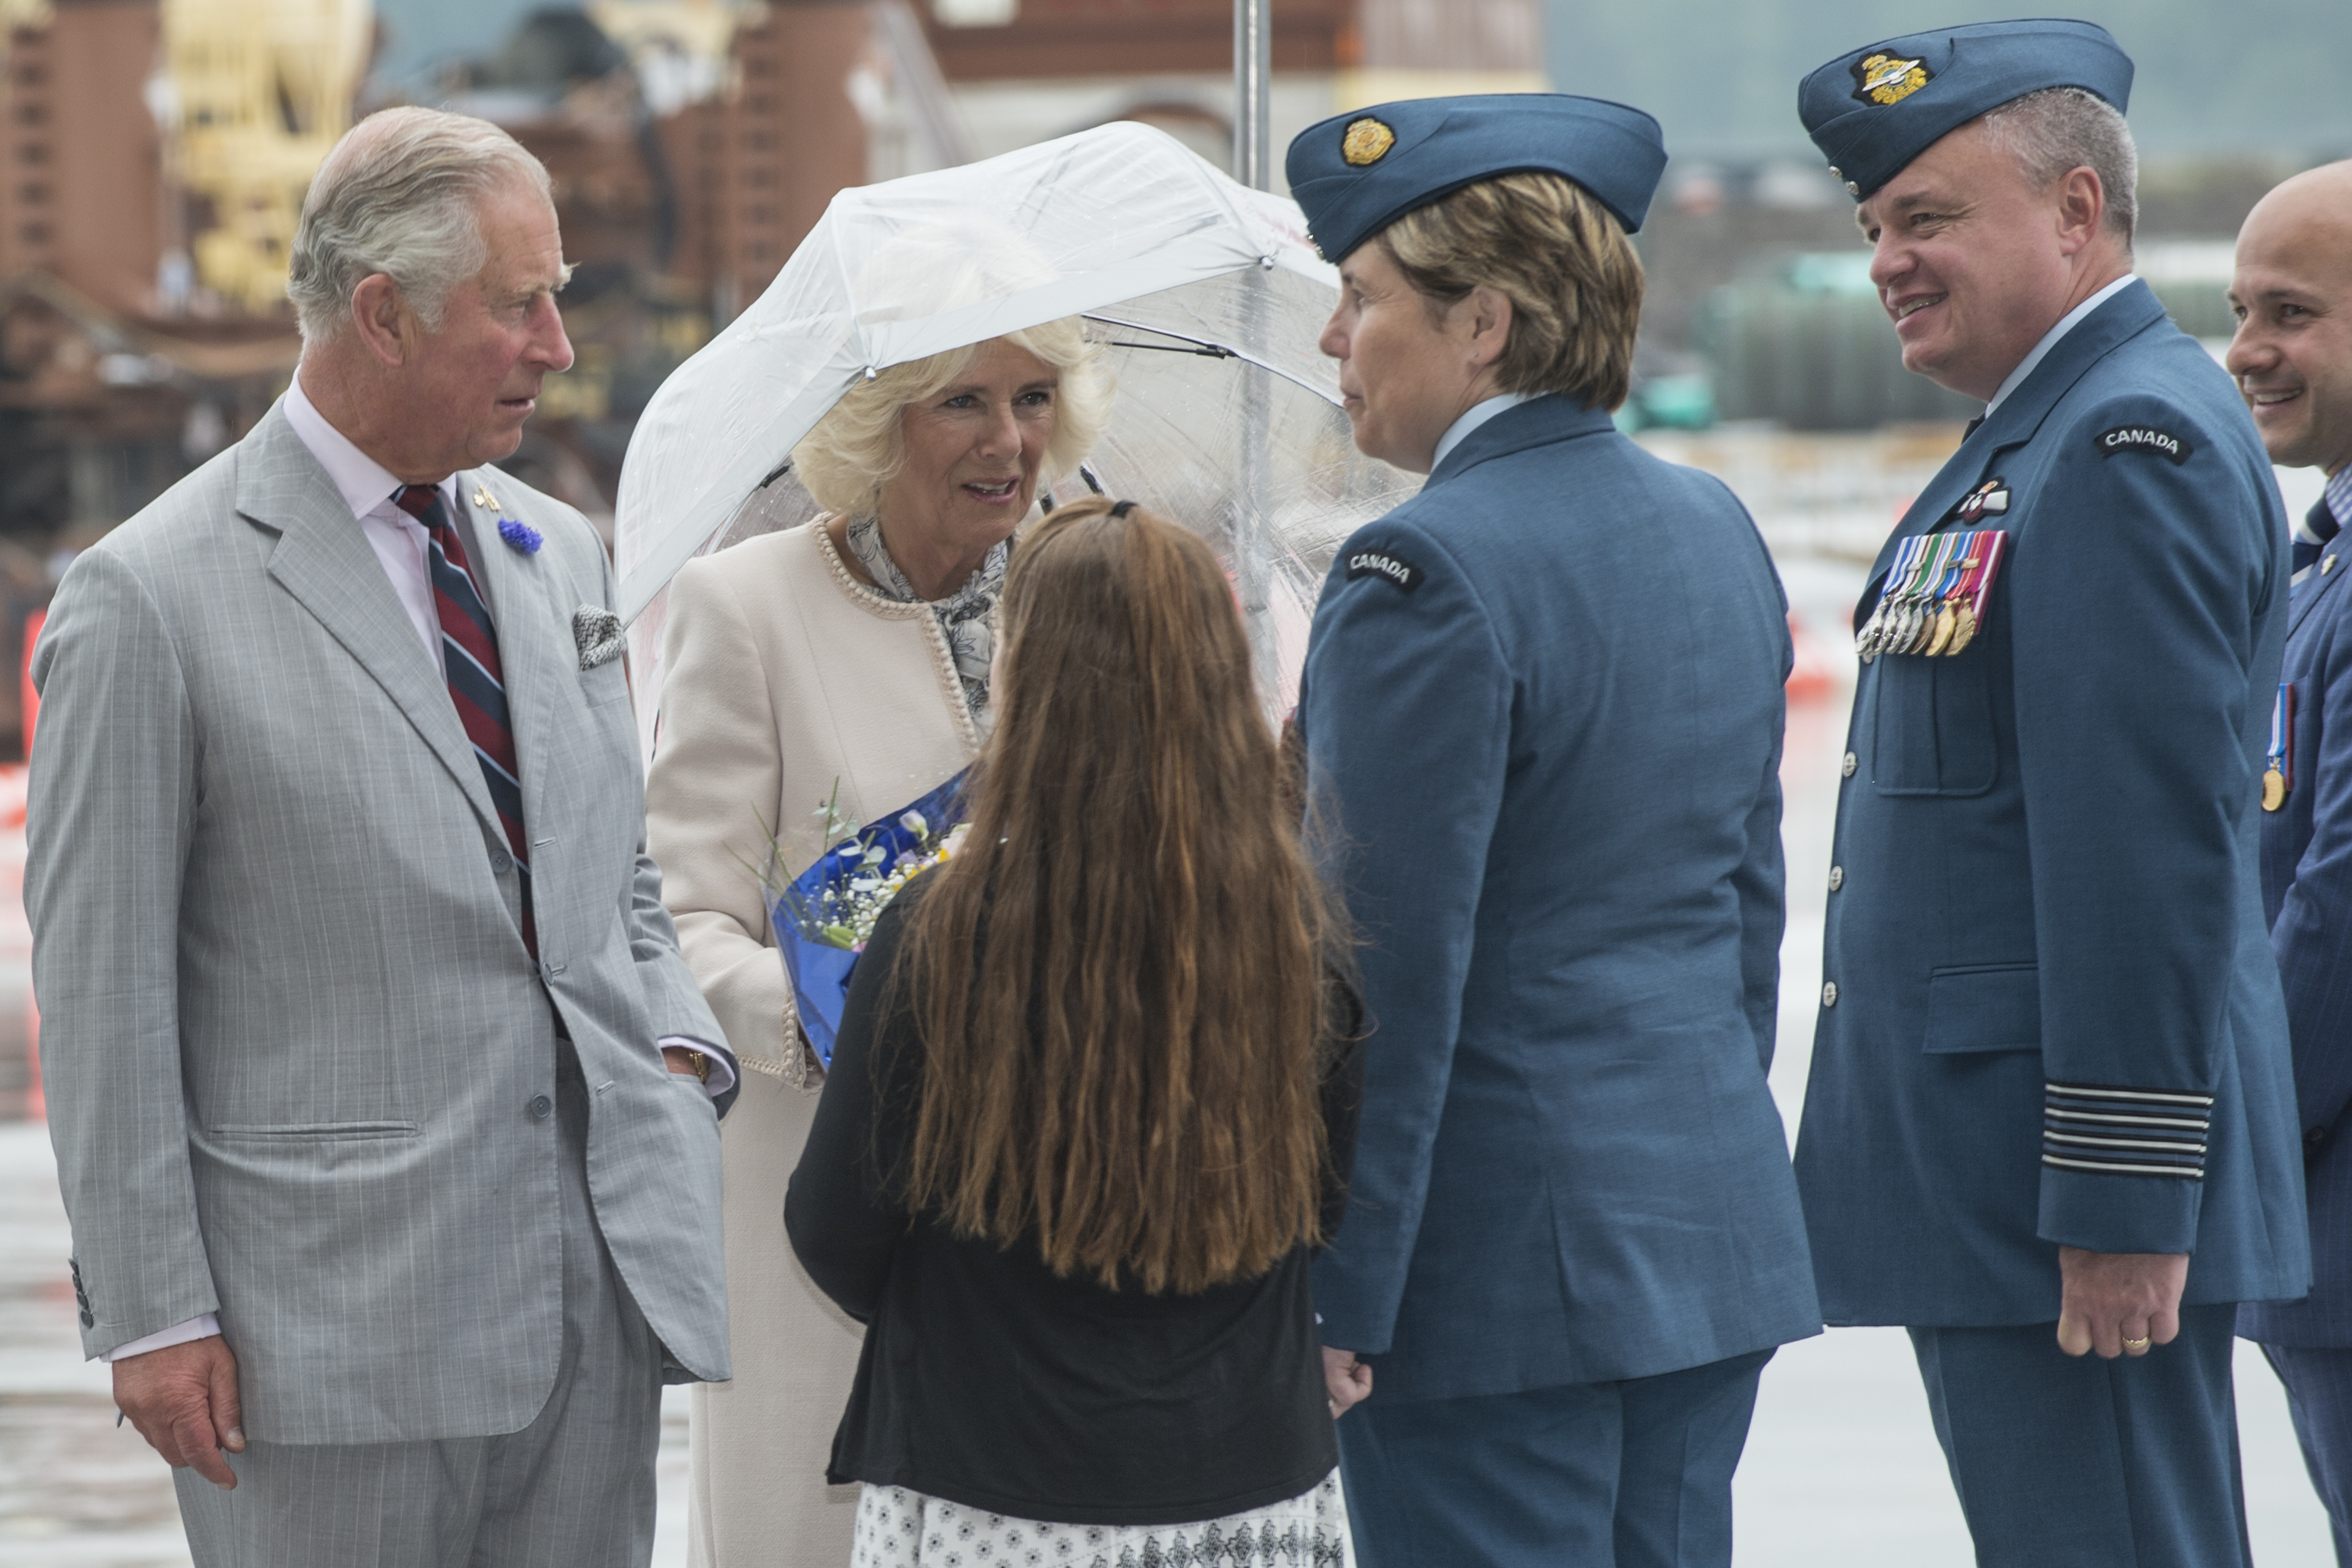 A man in a gray suit and a woman in a light coloured suit, holding an umbrella, speak with a woman in a blue uniform and a young girl with long hair.